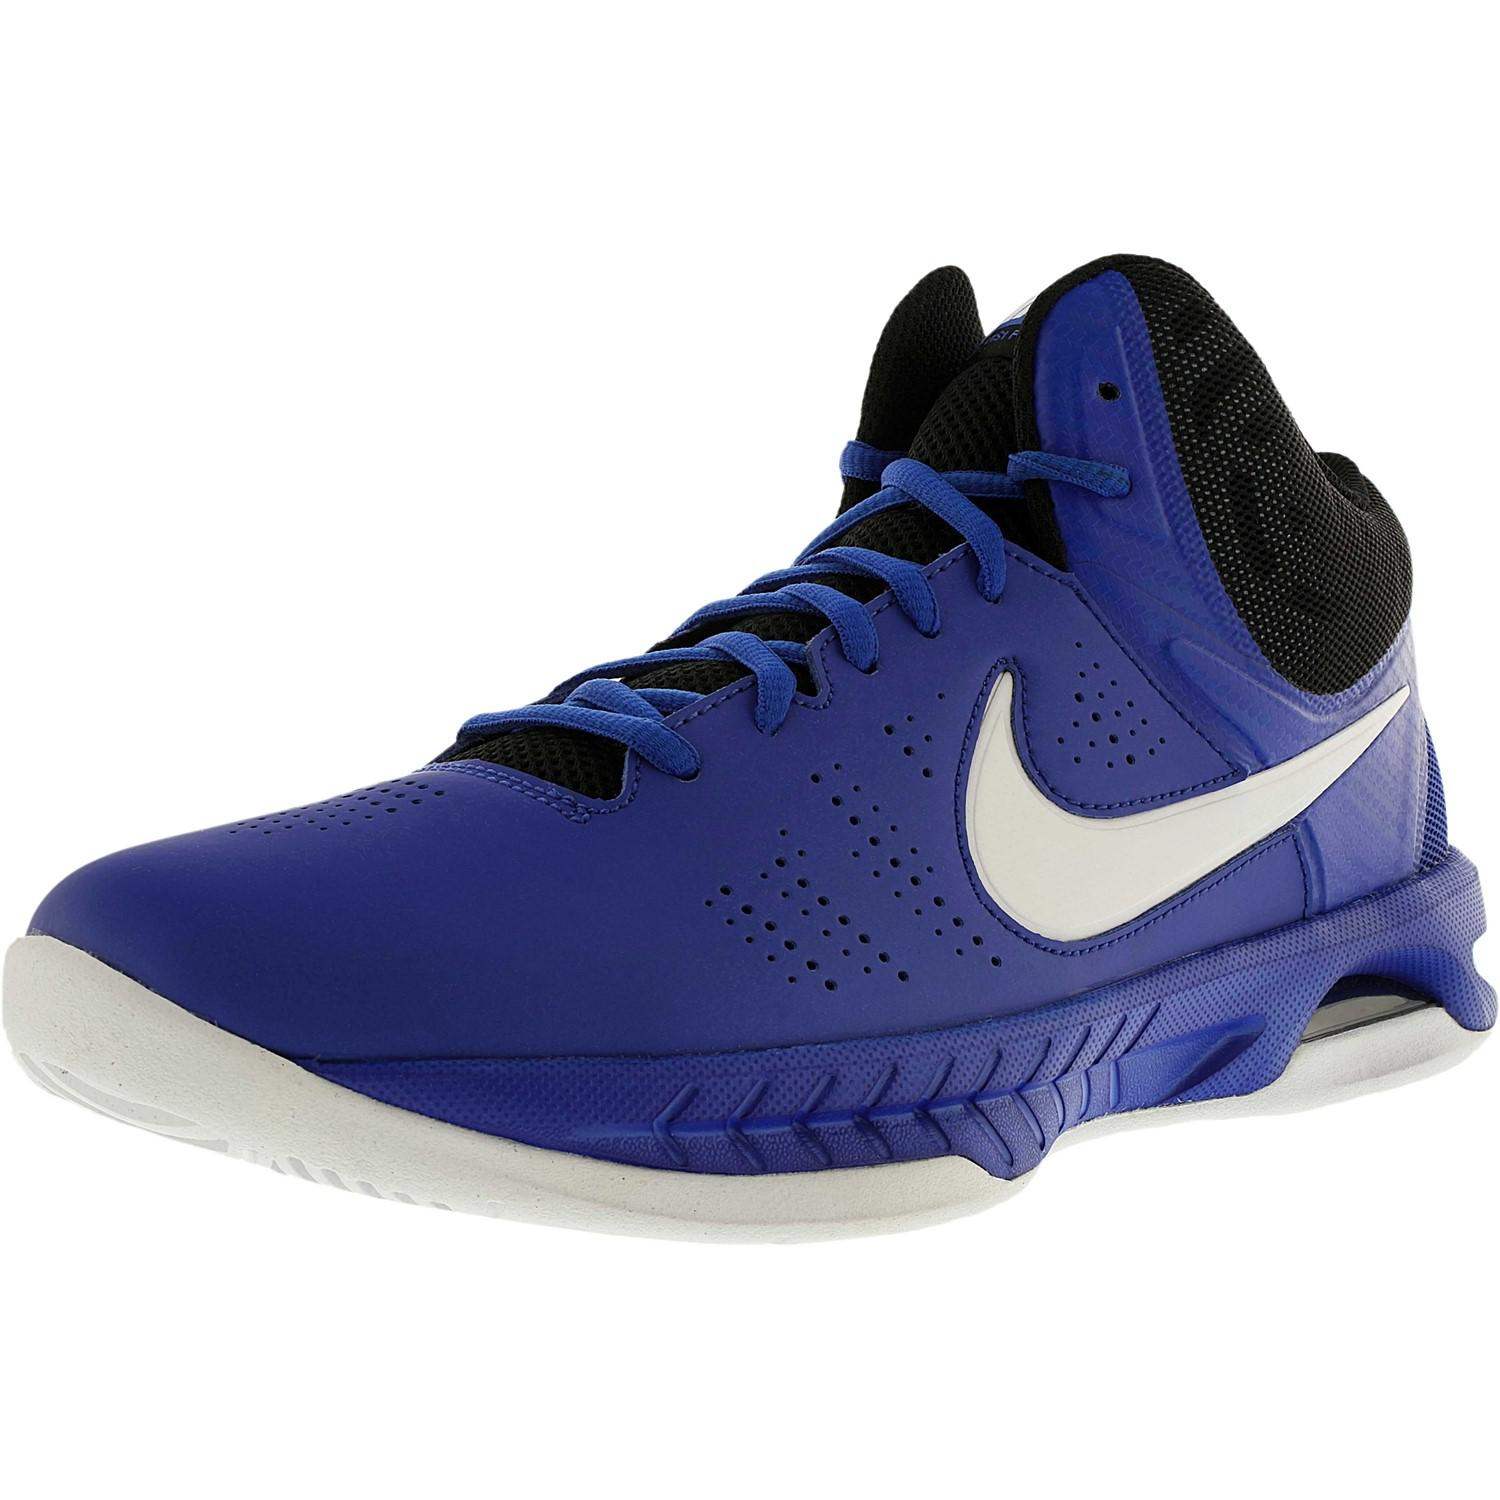 35d5adbabbc Lyst - Nike Air Visi Pro Vi Ankle-high Mesh Basketball Shoe - 9.5m ...